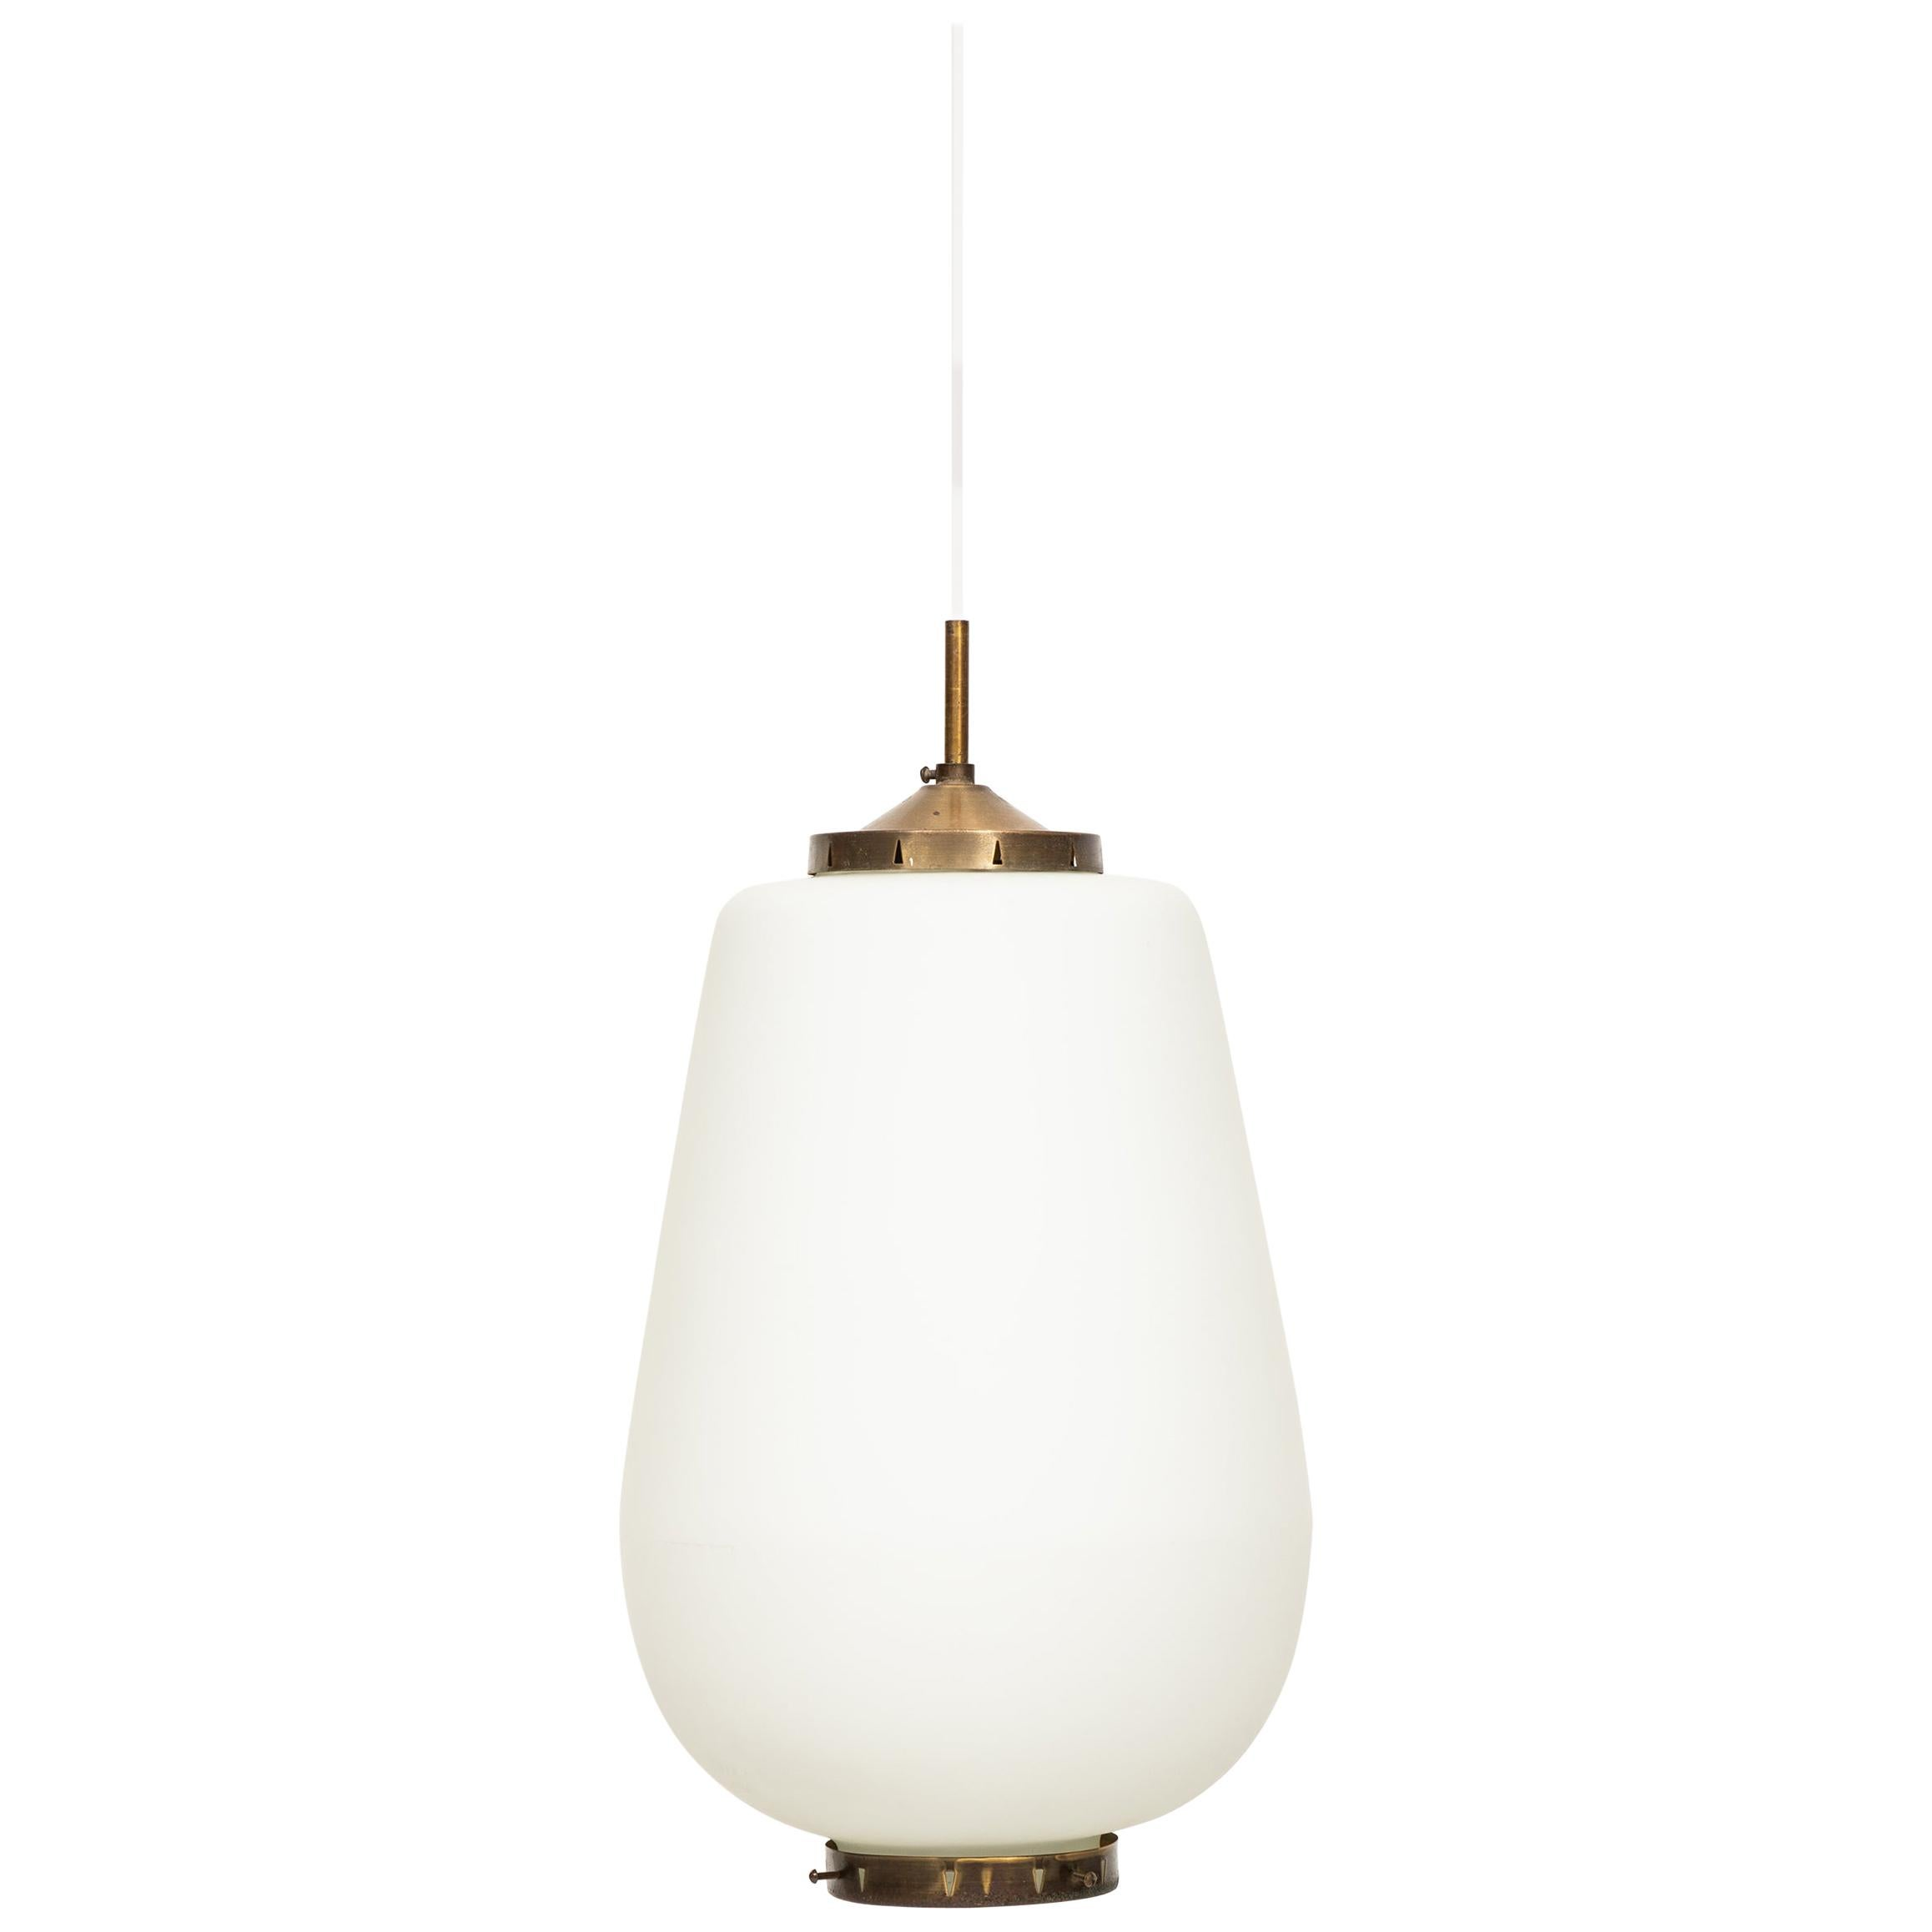 Bent Karlby Ceiling Lamp Produced by Lyfa in Denmark